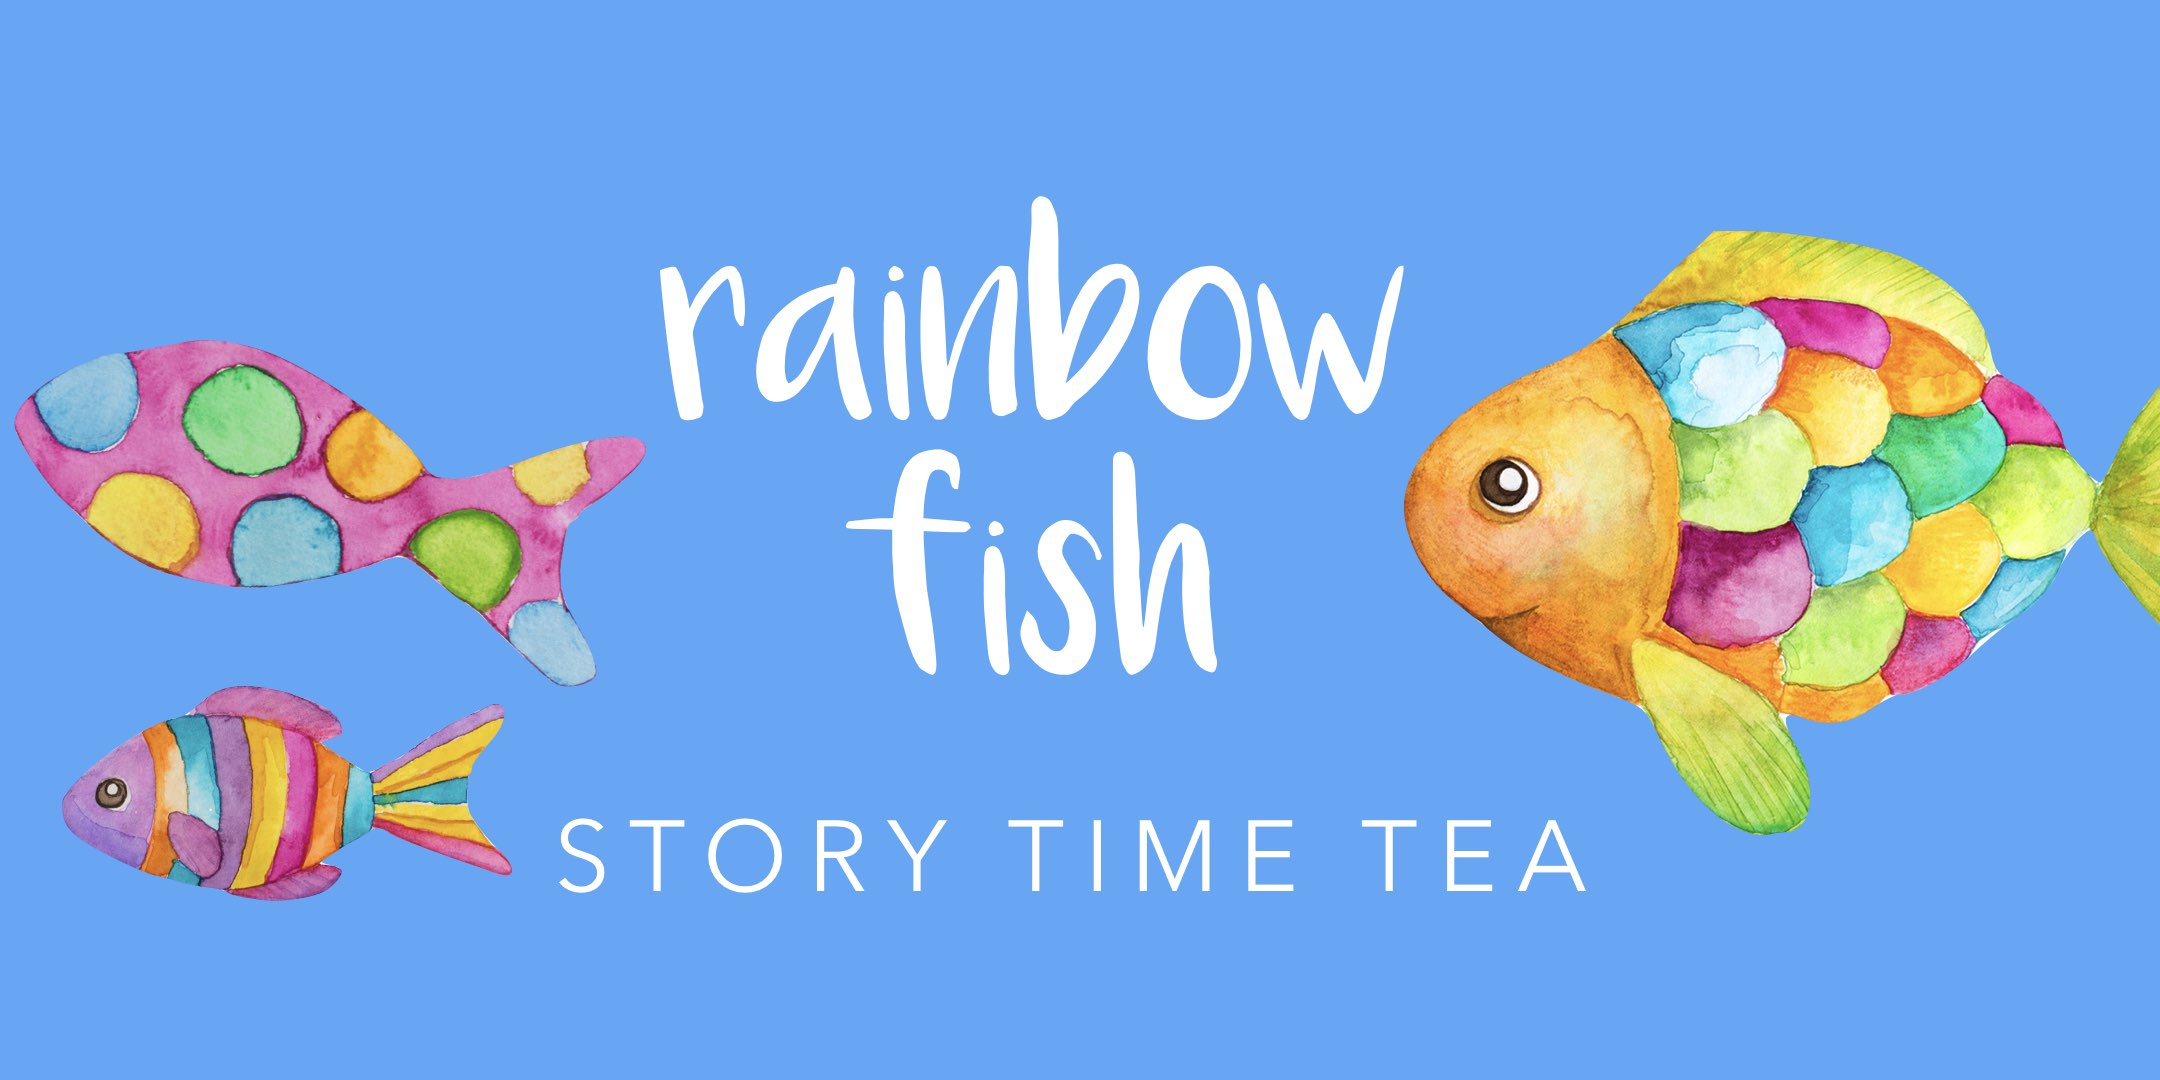 Rainbow Fish Story Time Tea.001